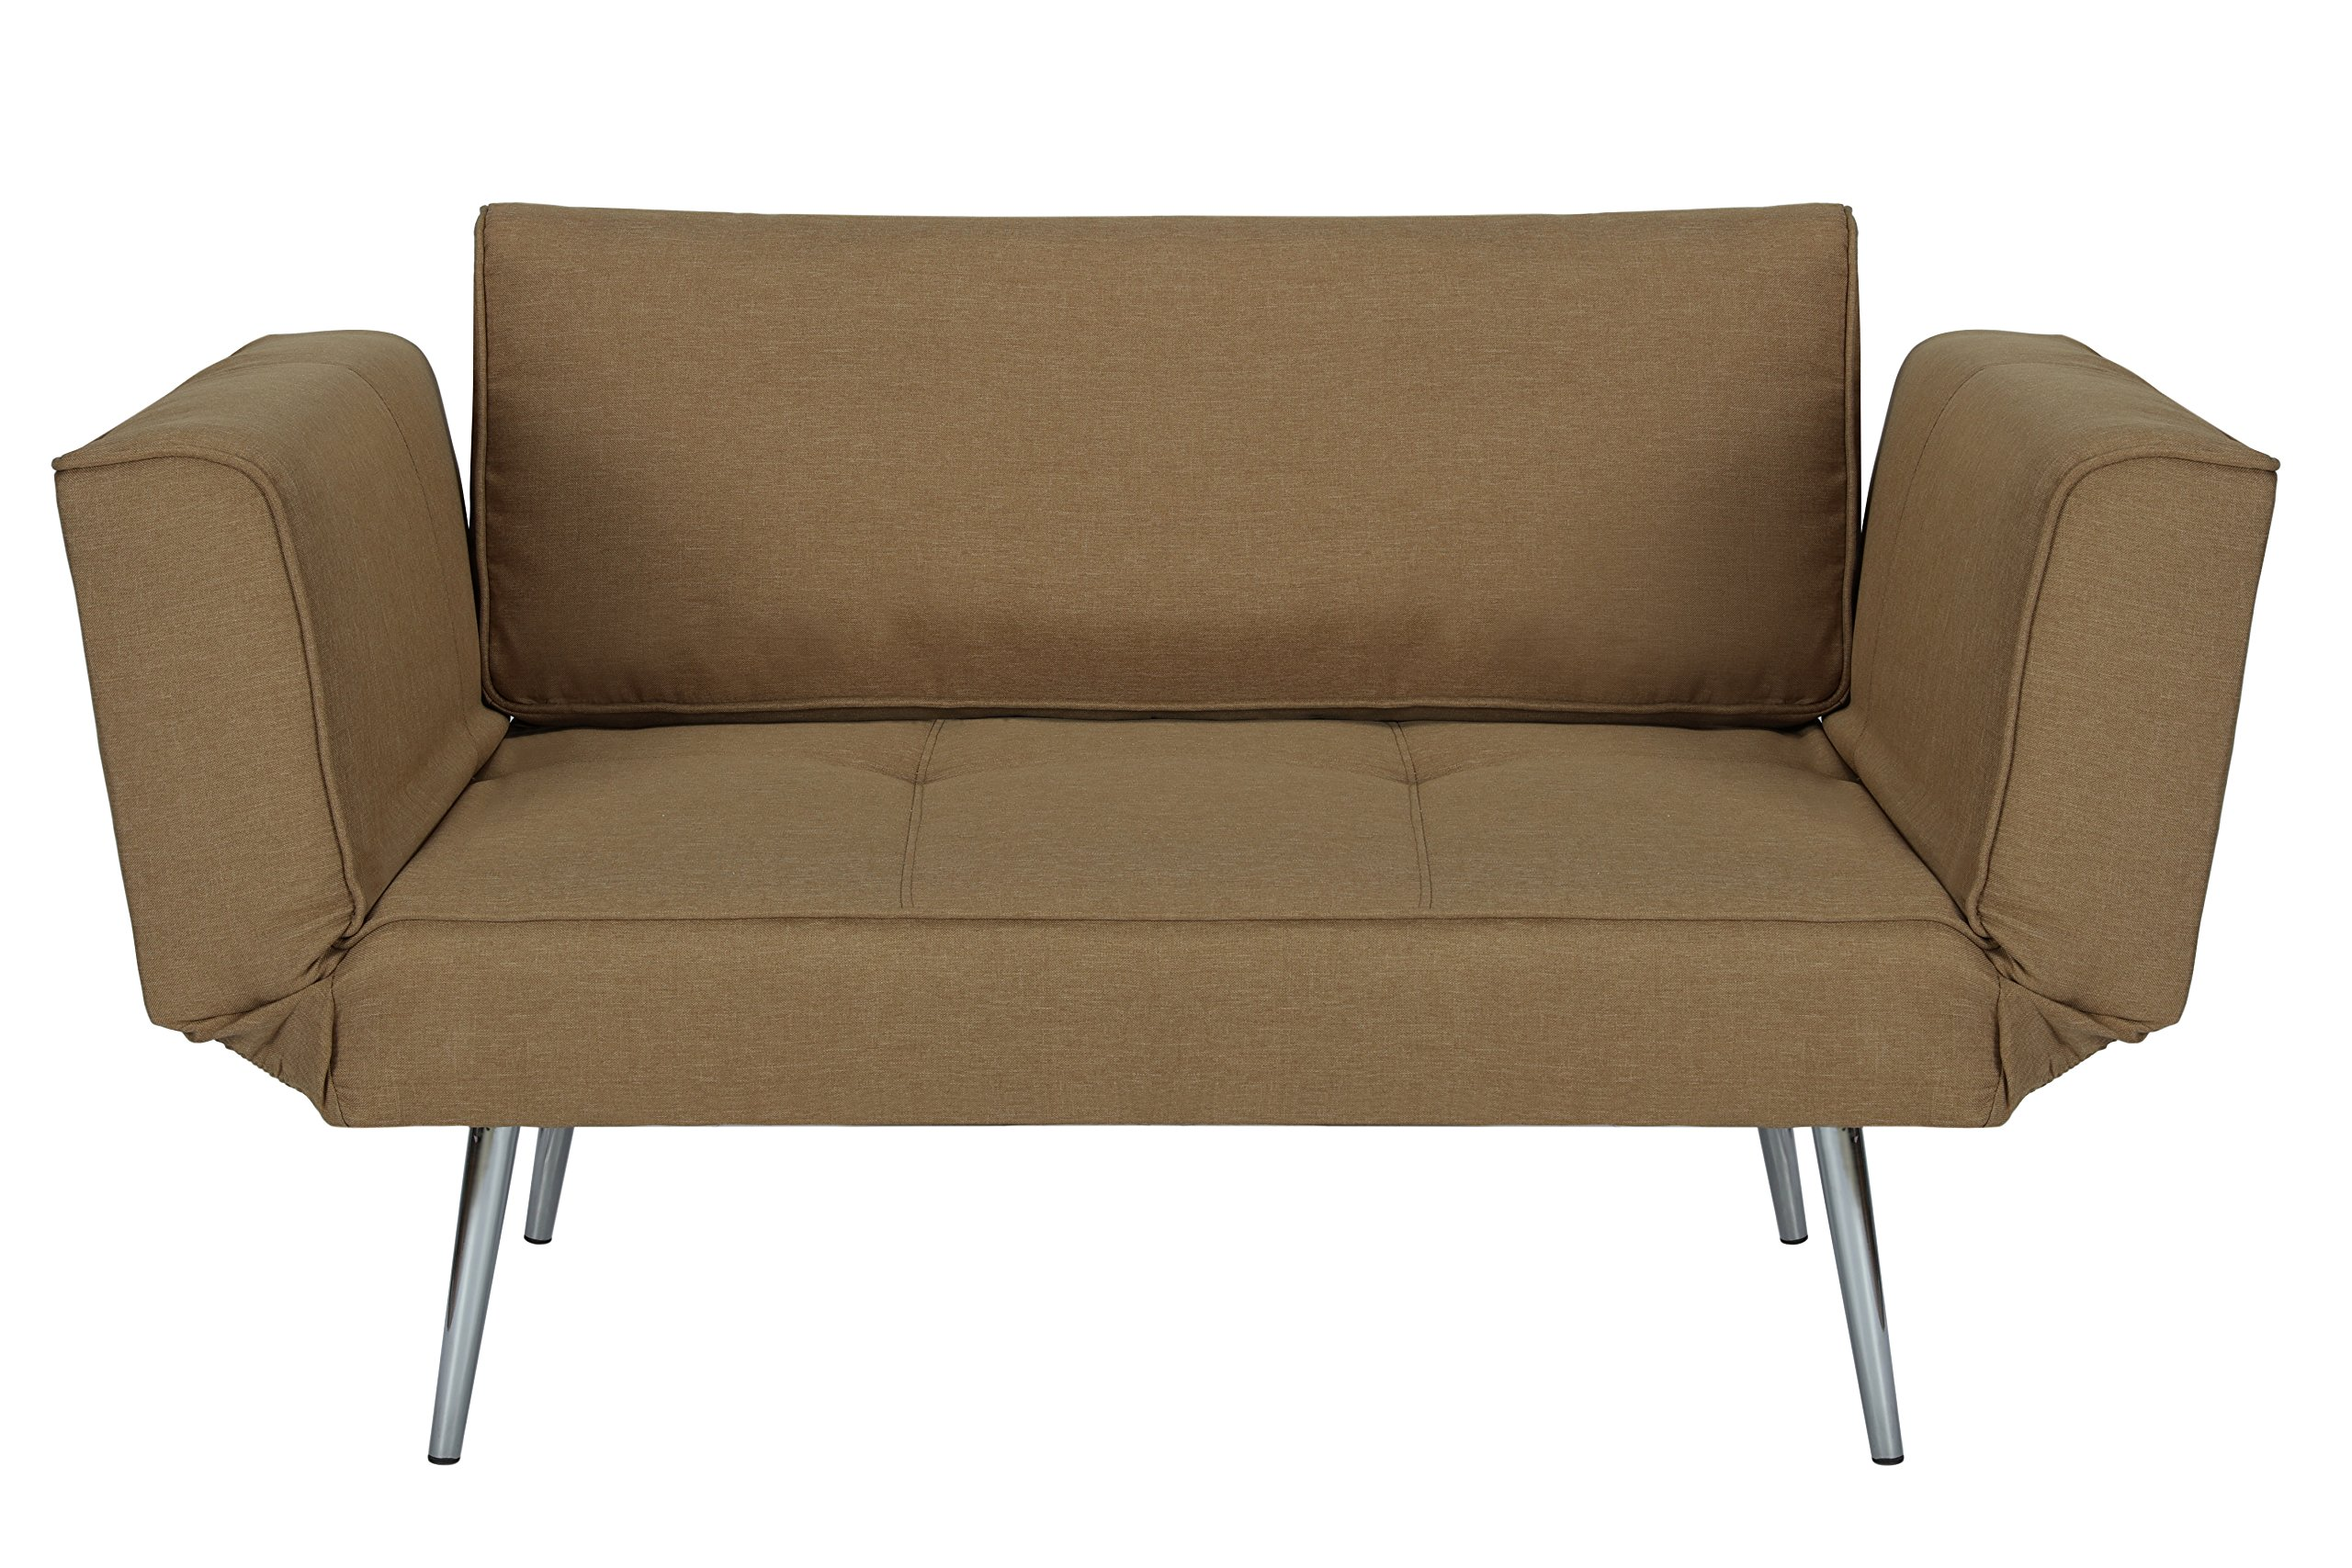 DHP Euro Sofa Futon Loveseat with Chrome Legs and Adjustable Armrests - Tan by DHP (Image #1)